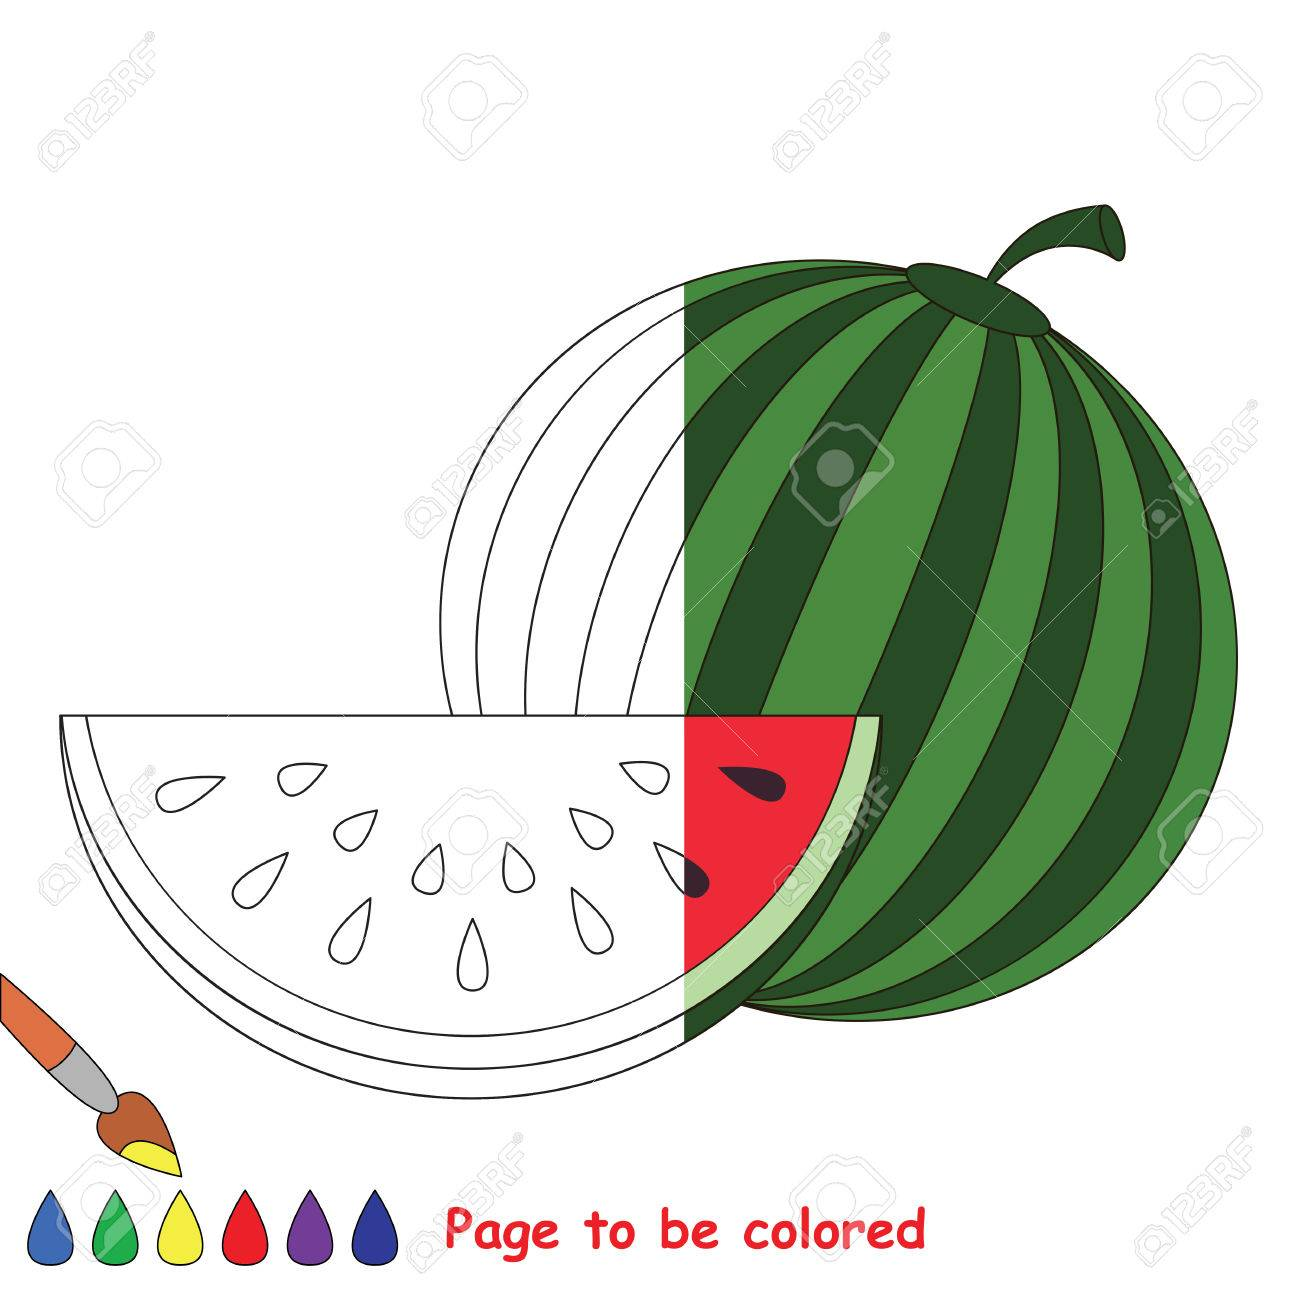 Watermelon And Slice To Be Colored The Coloring Book To Educate